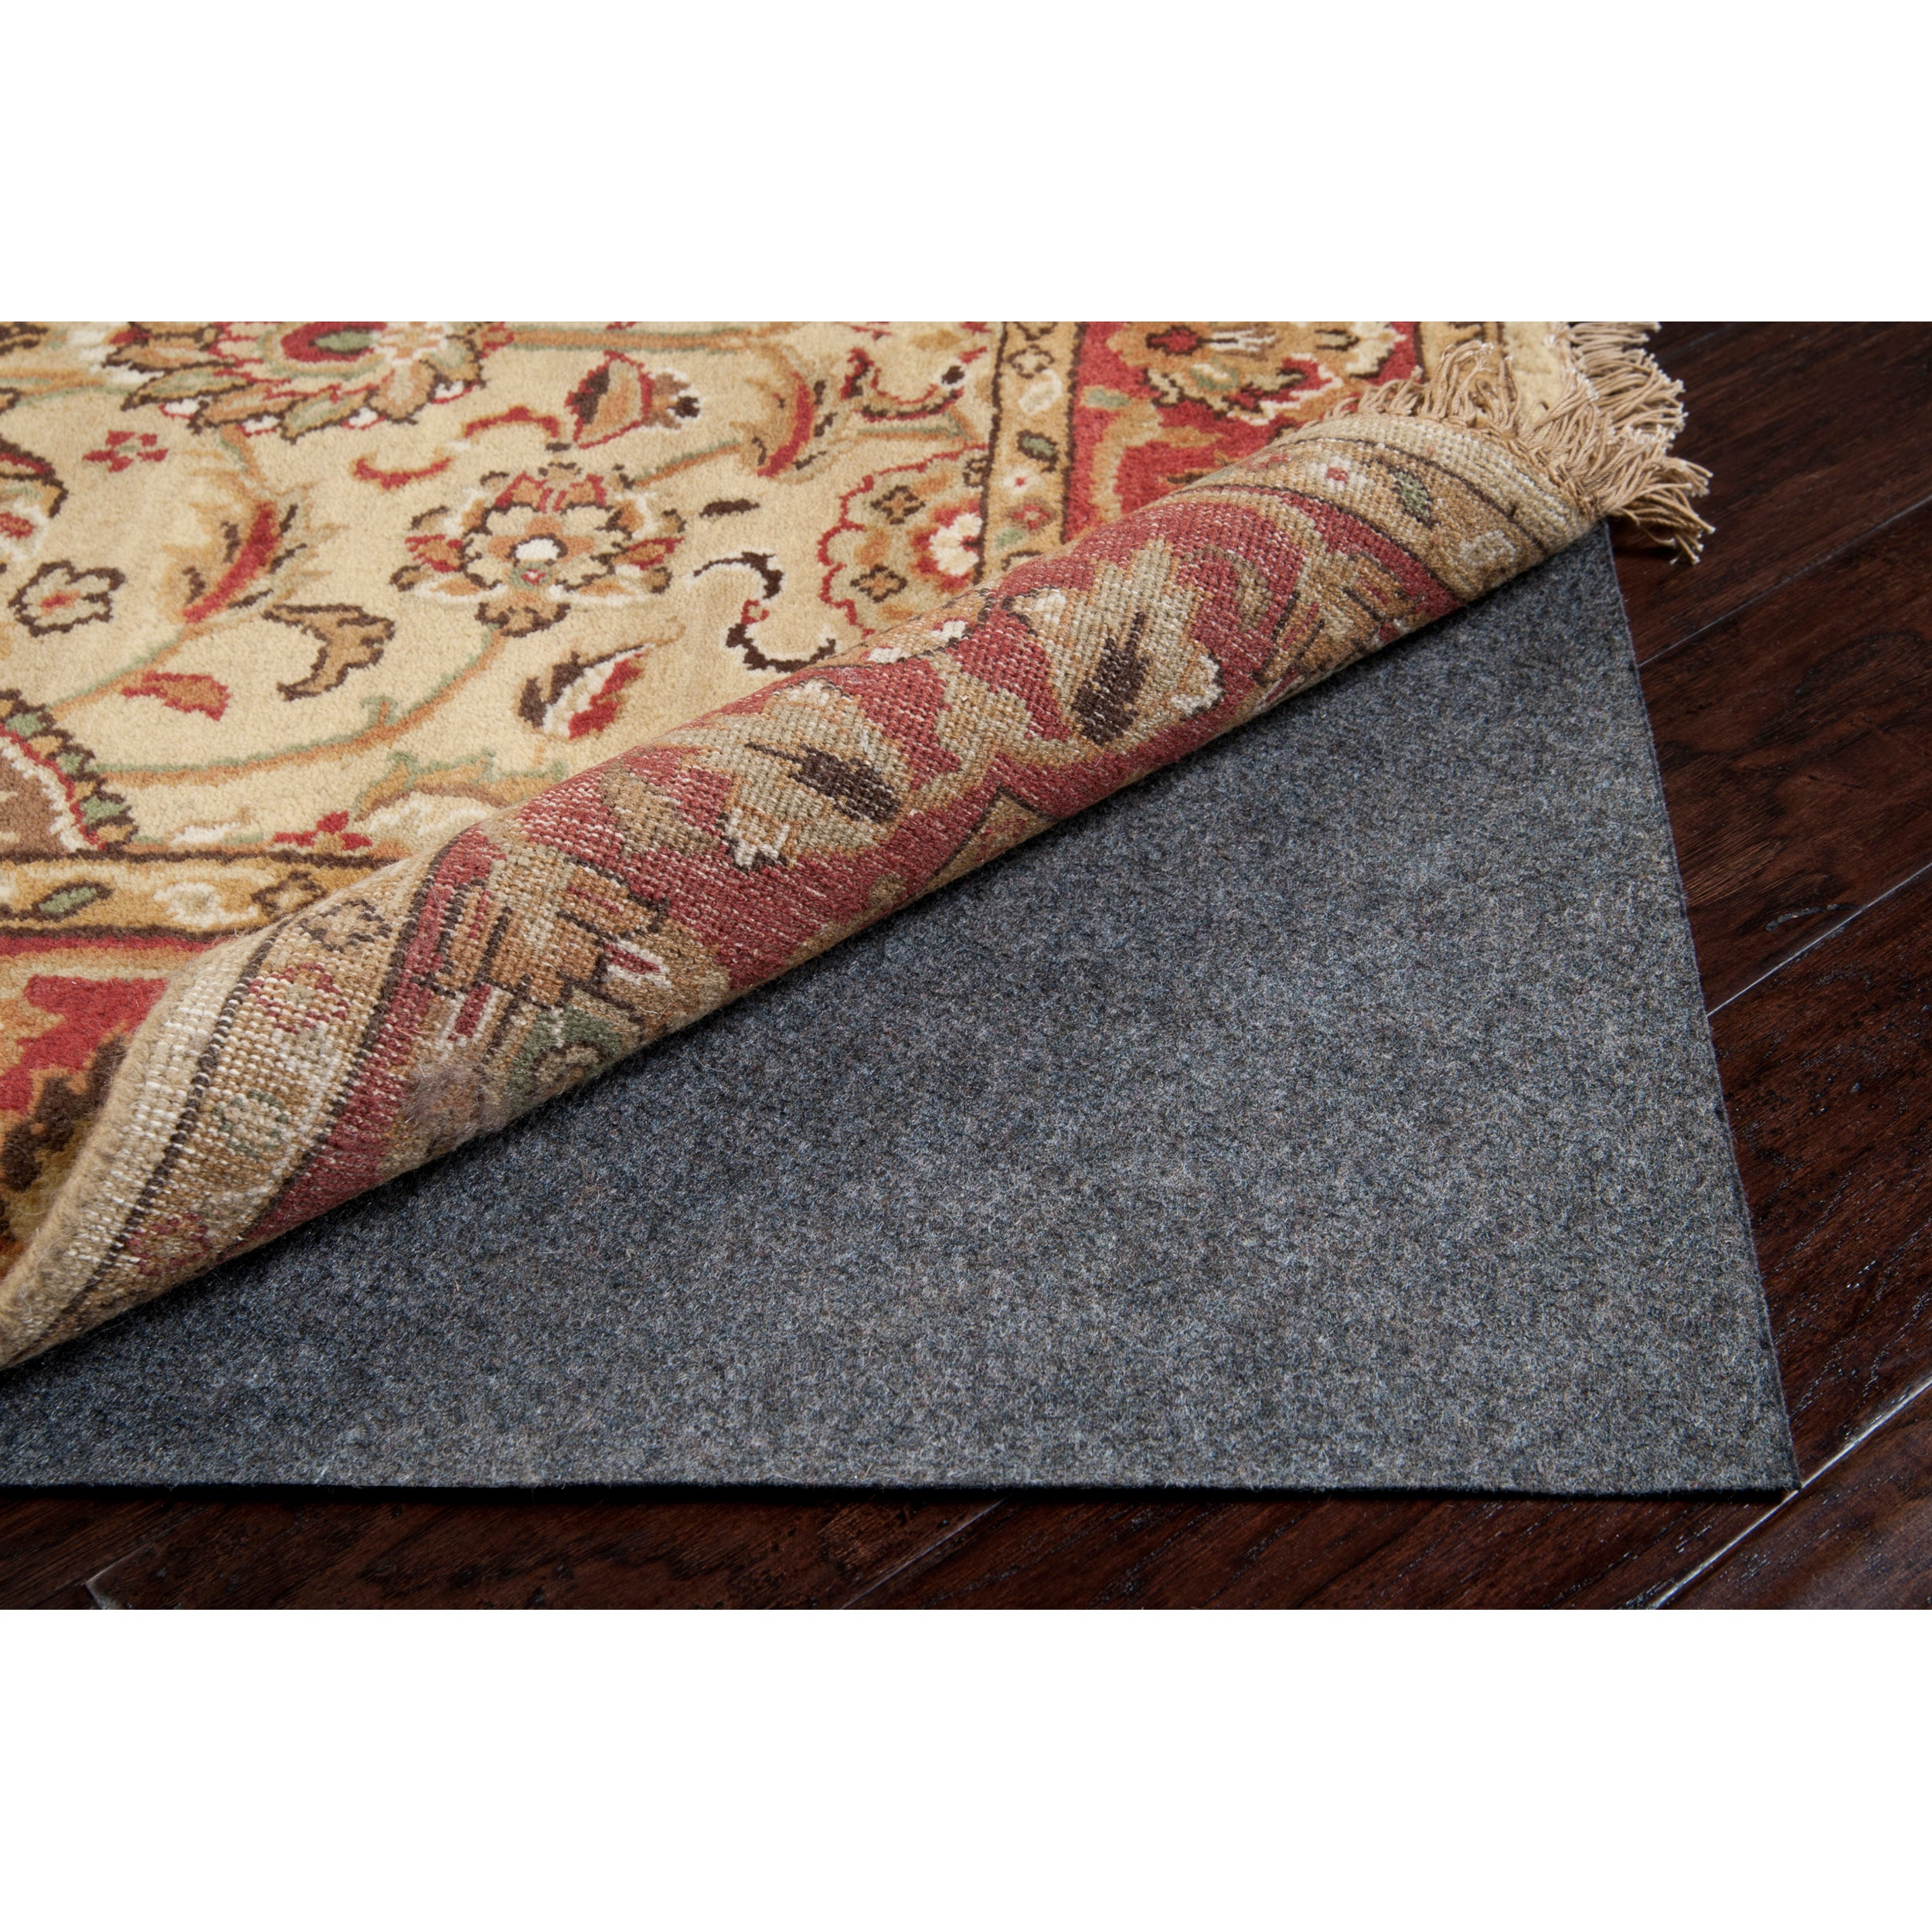 prime dual felt rug pad (7'10 x 10'10) - free shipping today